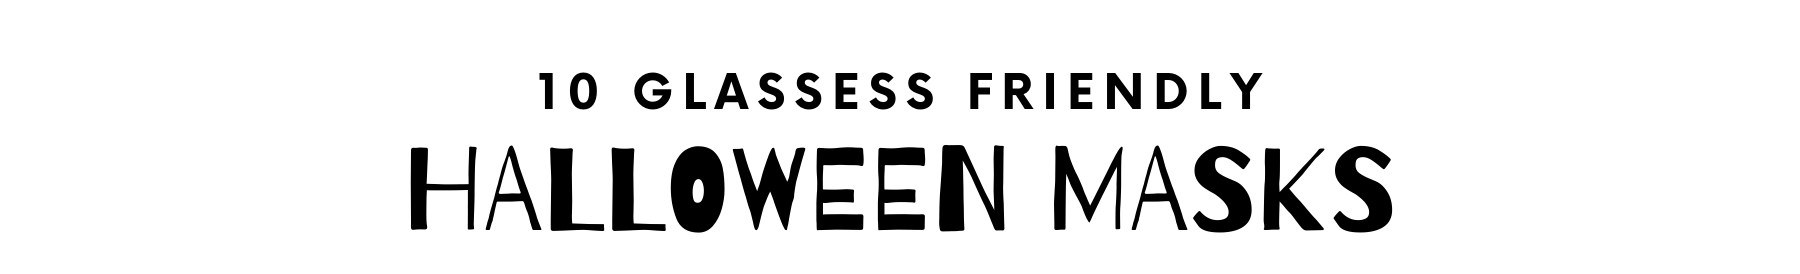 Glasses friendly halloween costumes